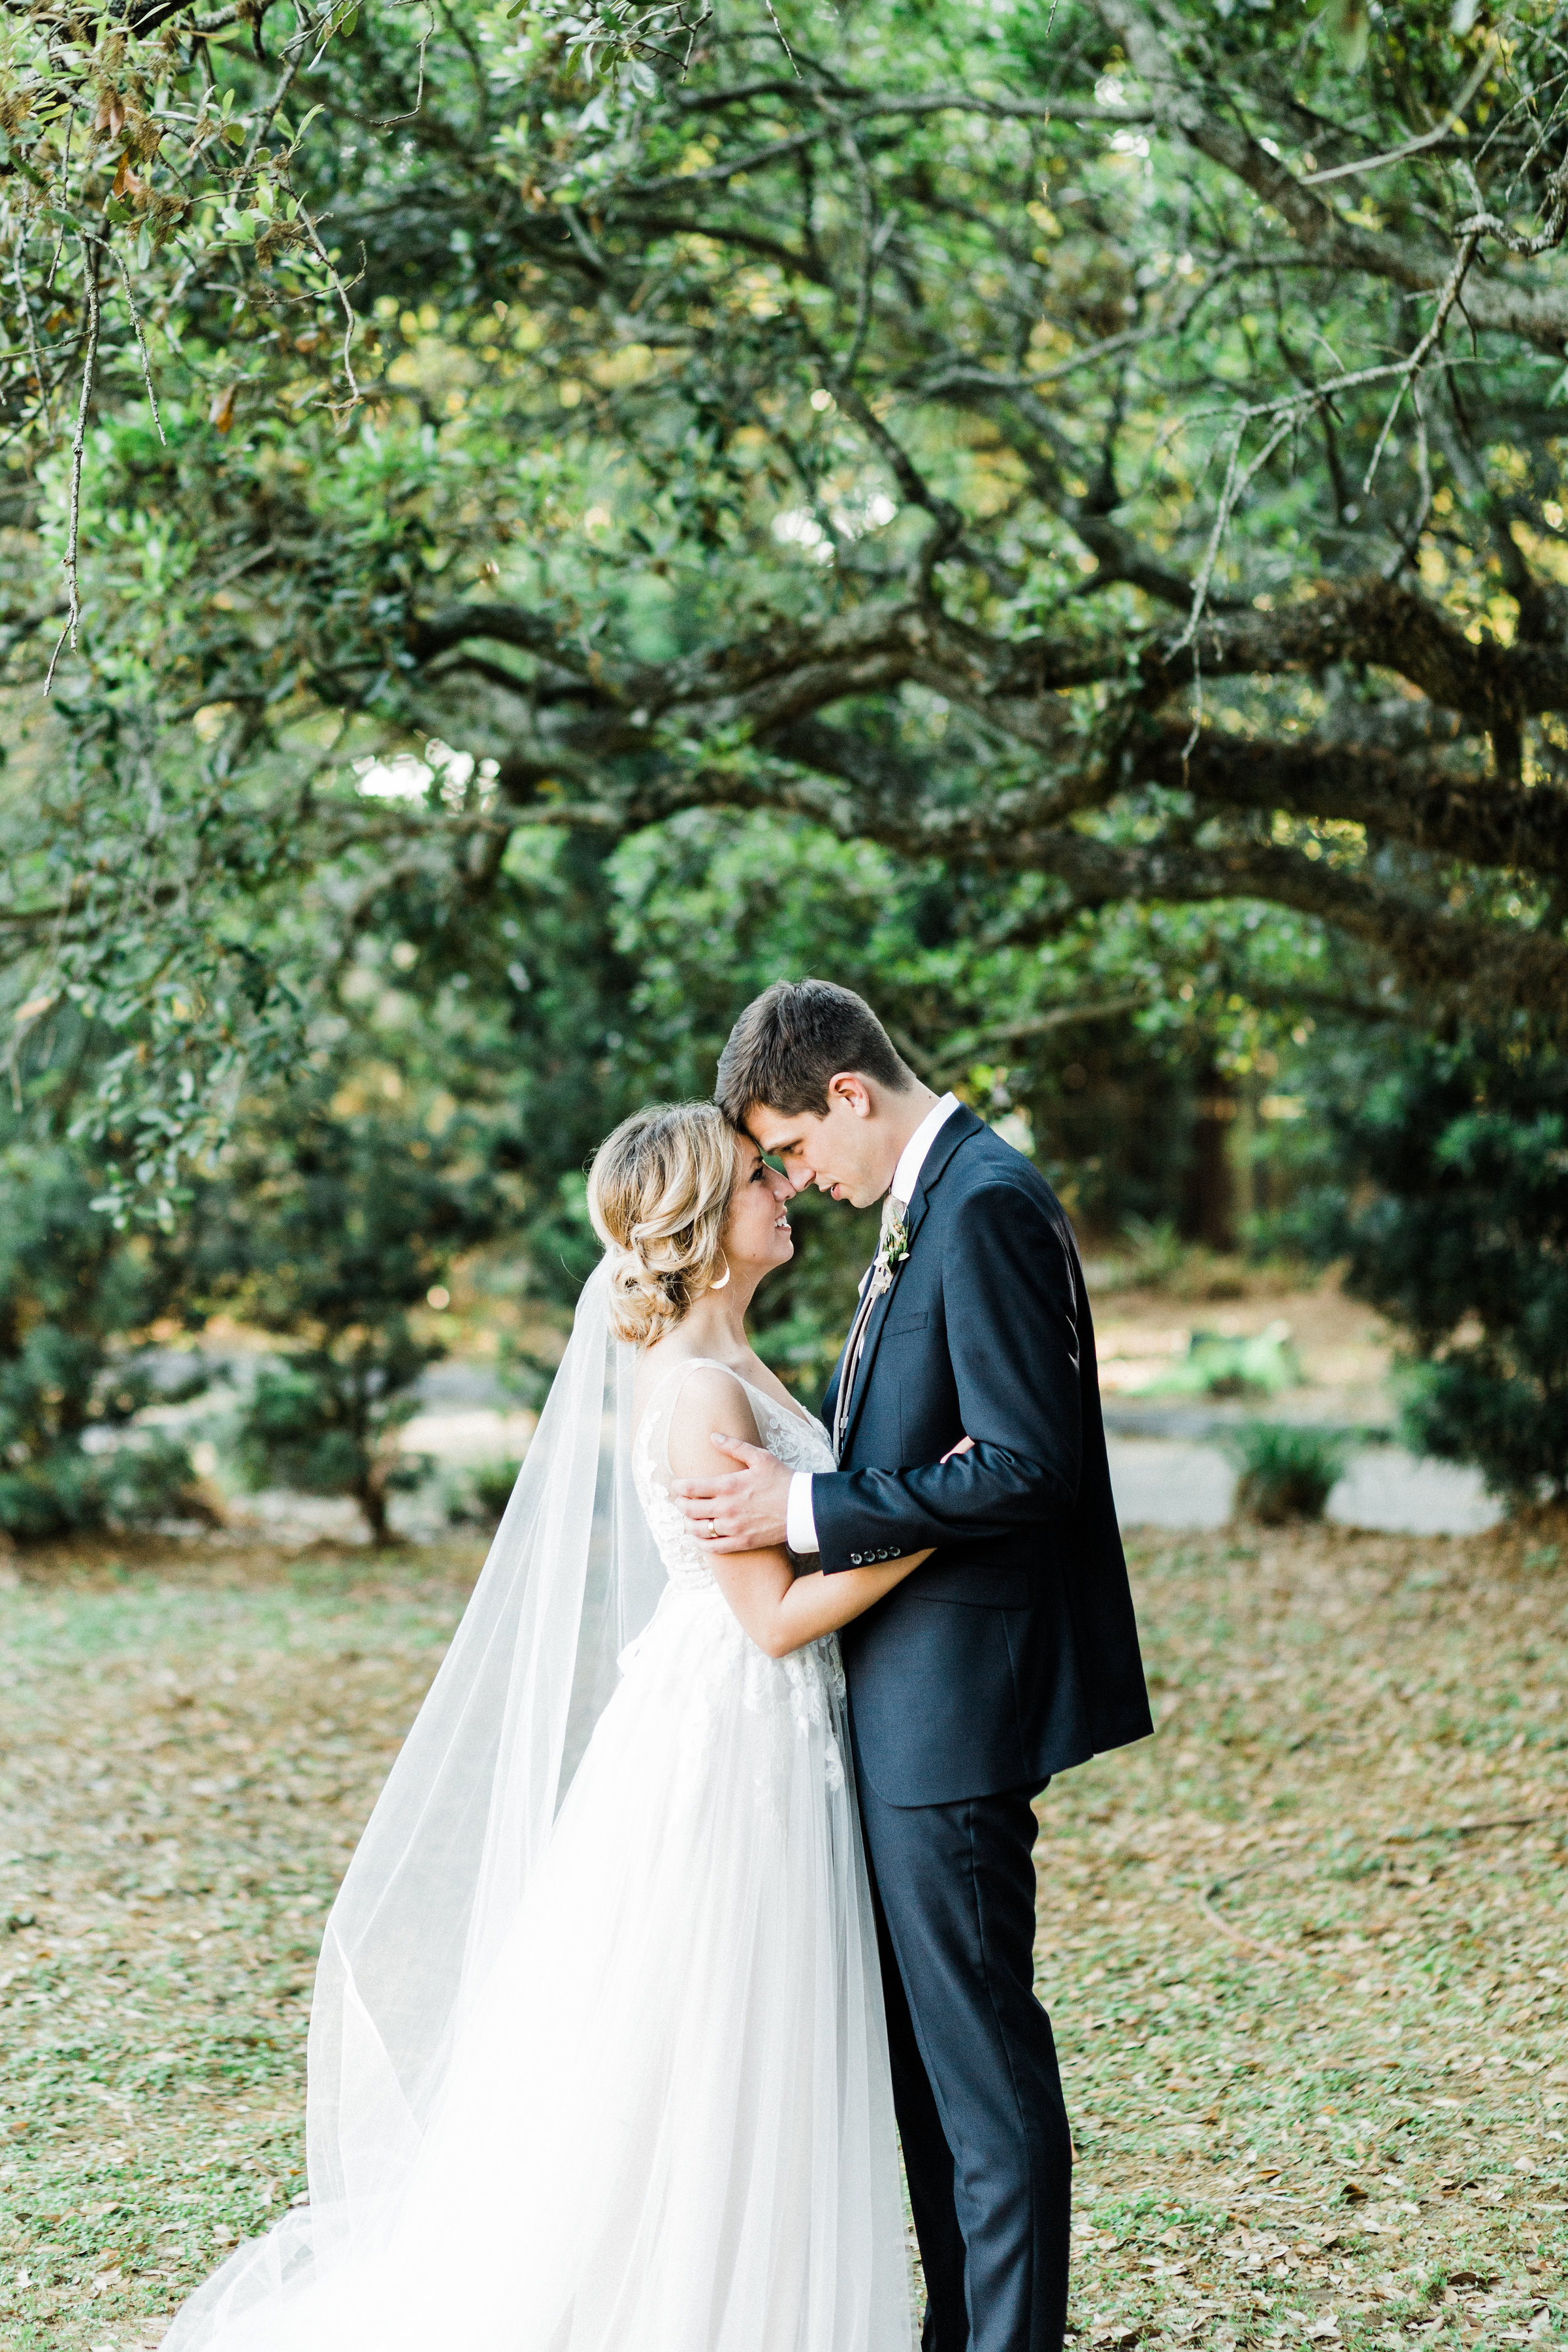 Southern Fete, Southern Wedding, Bride and Groom Moment, Carolynn Seibert Photography